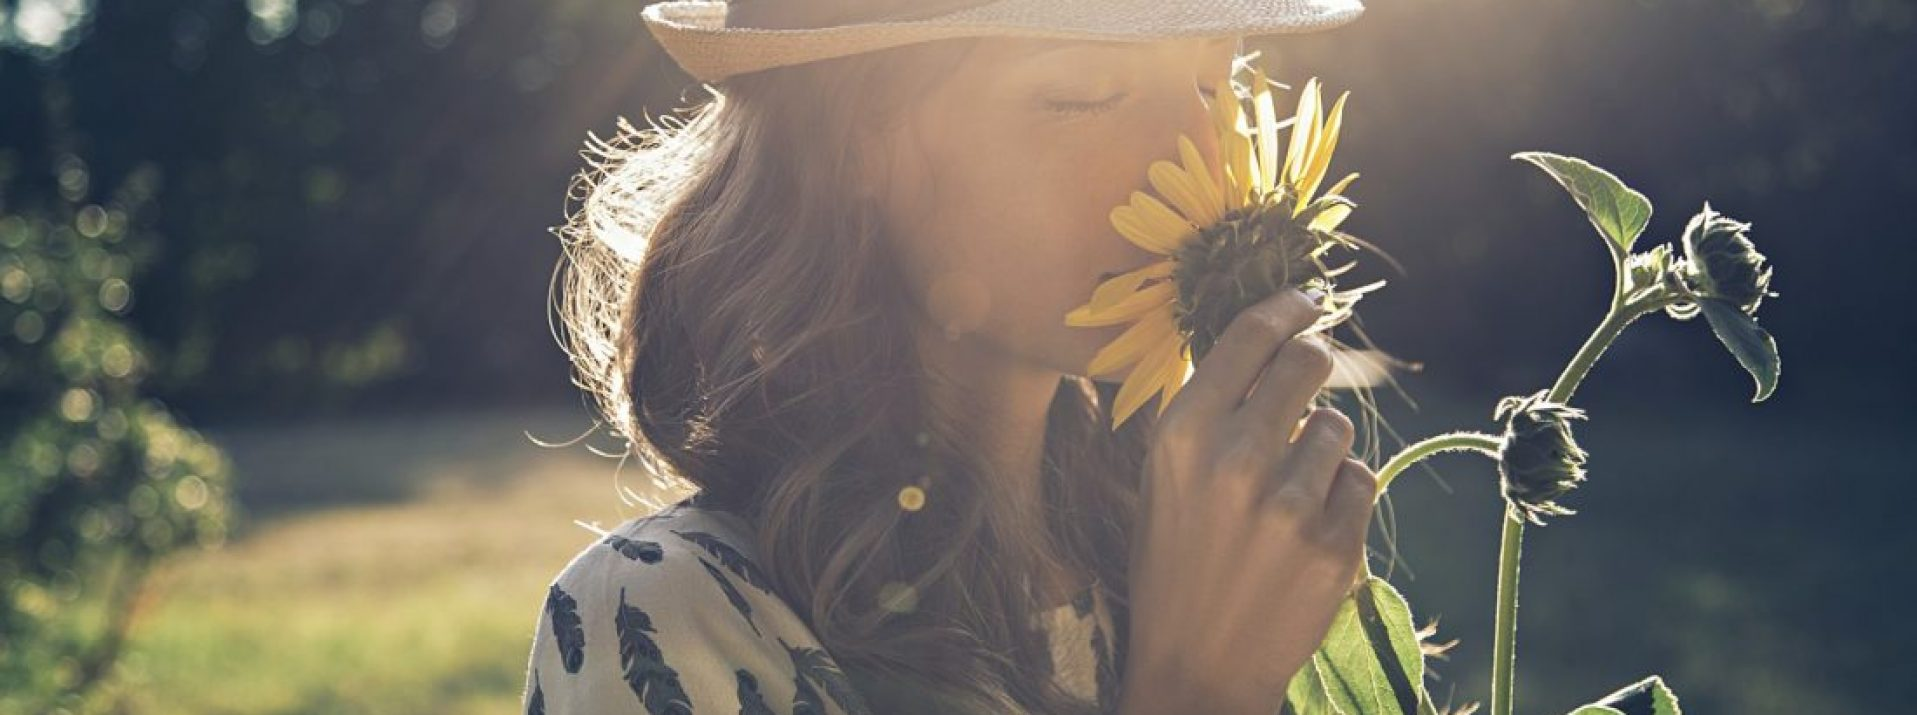 Girl smells sunflower in nature